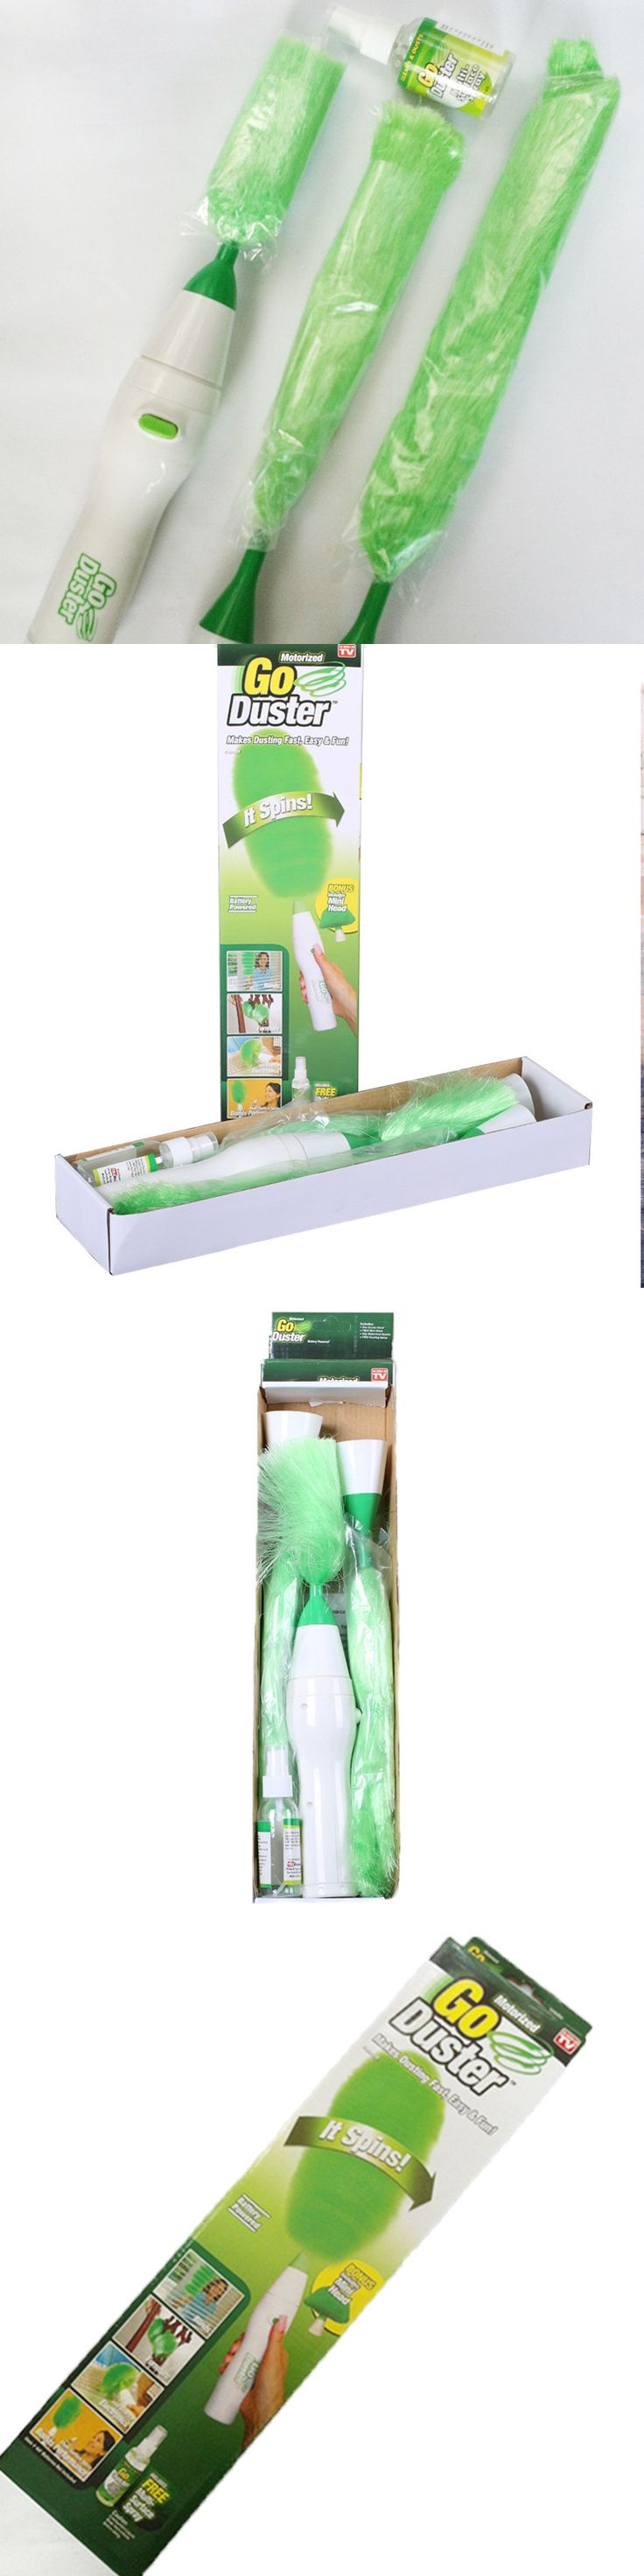 JY64 Dust Brush Multifunctional Green Feather Dusters Dust Cleaning Brush window cleaning for Blinds home cleaning